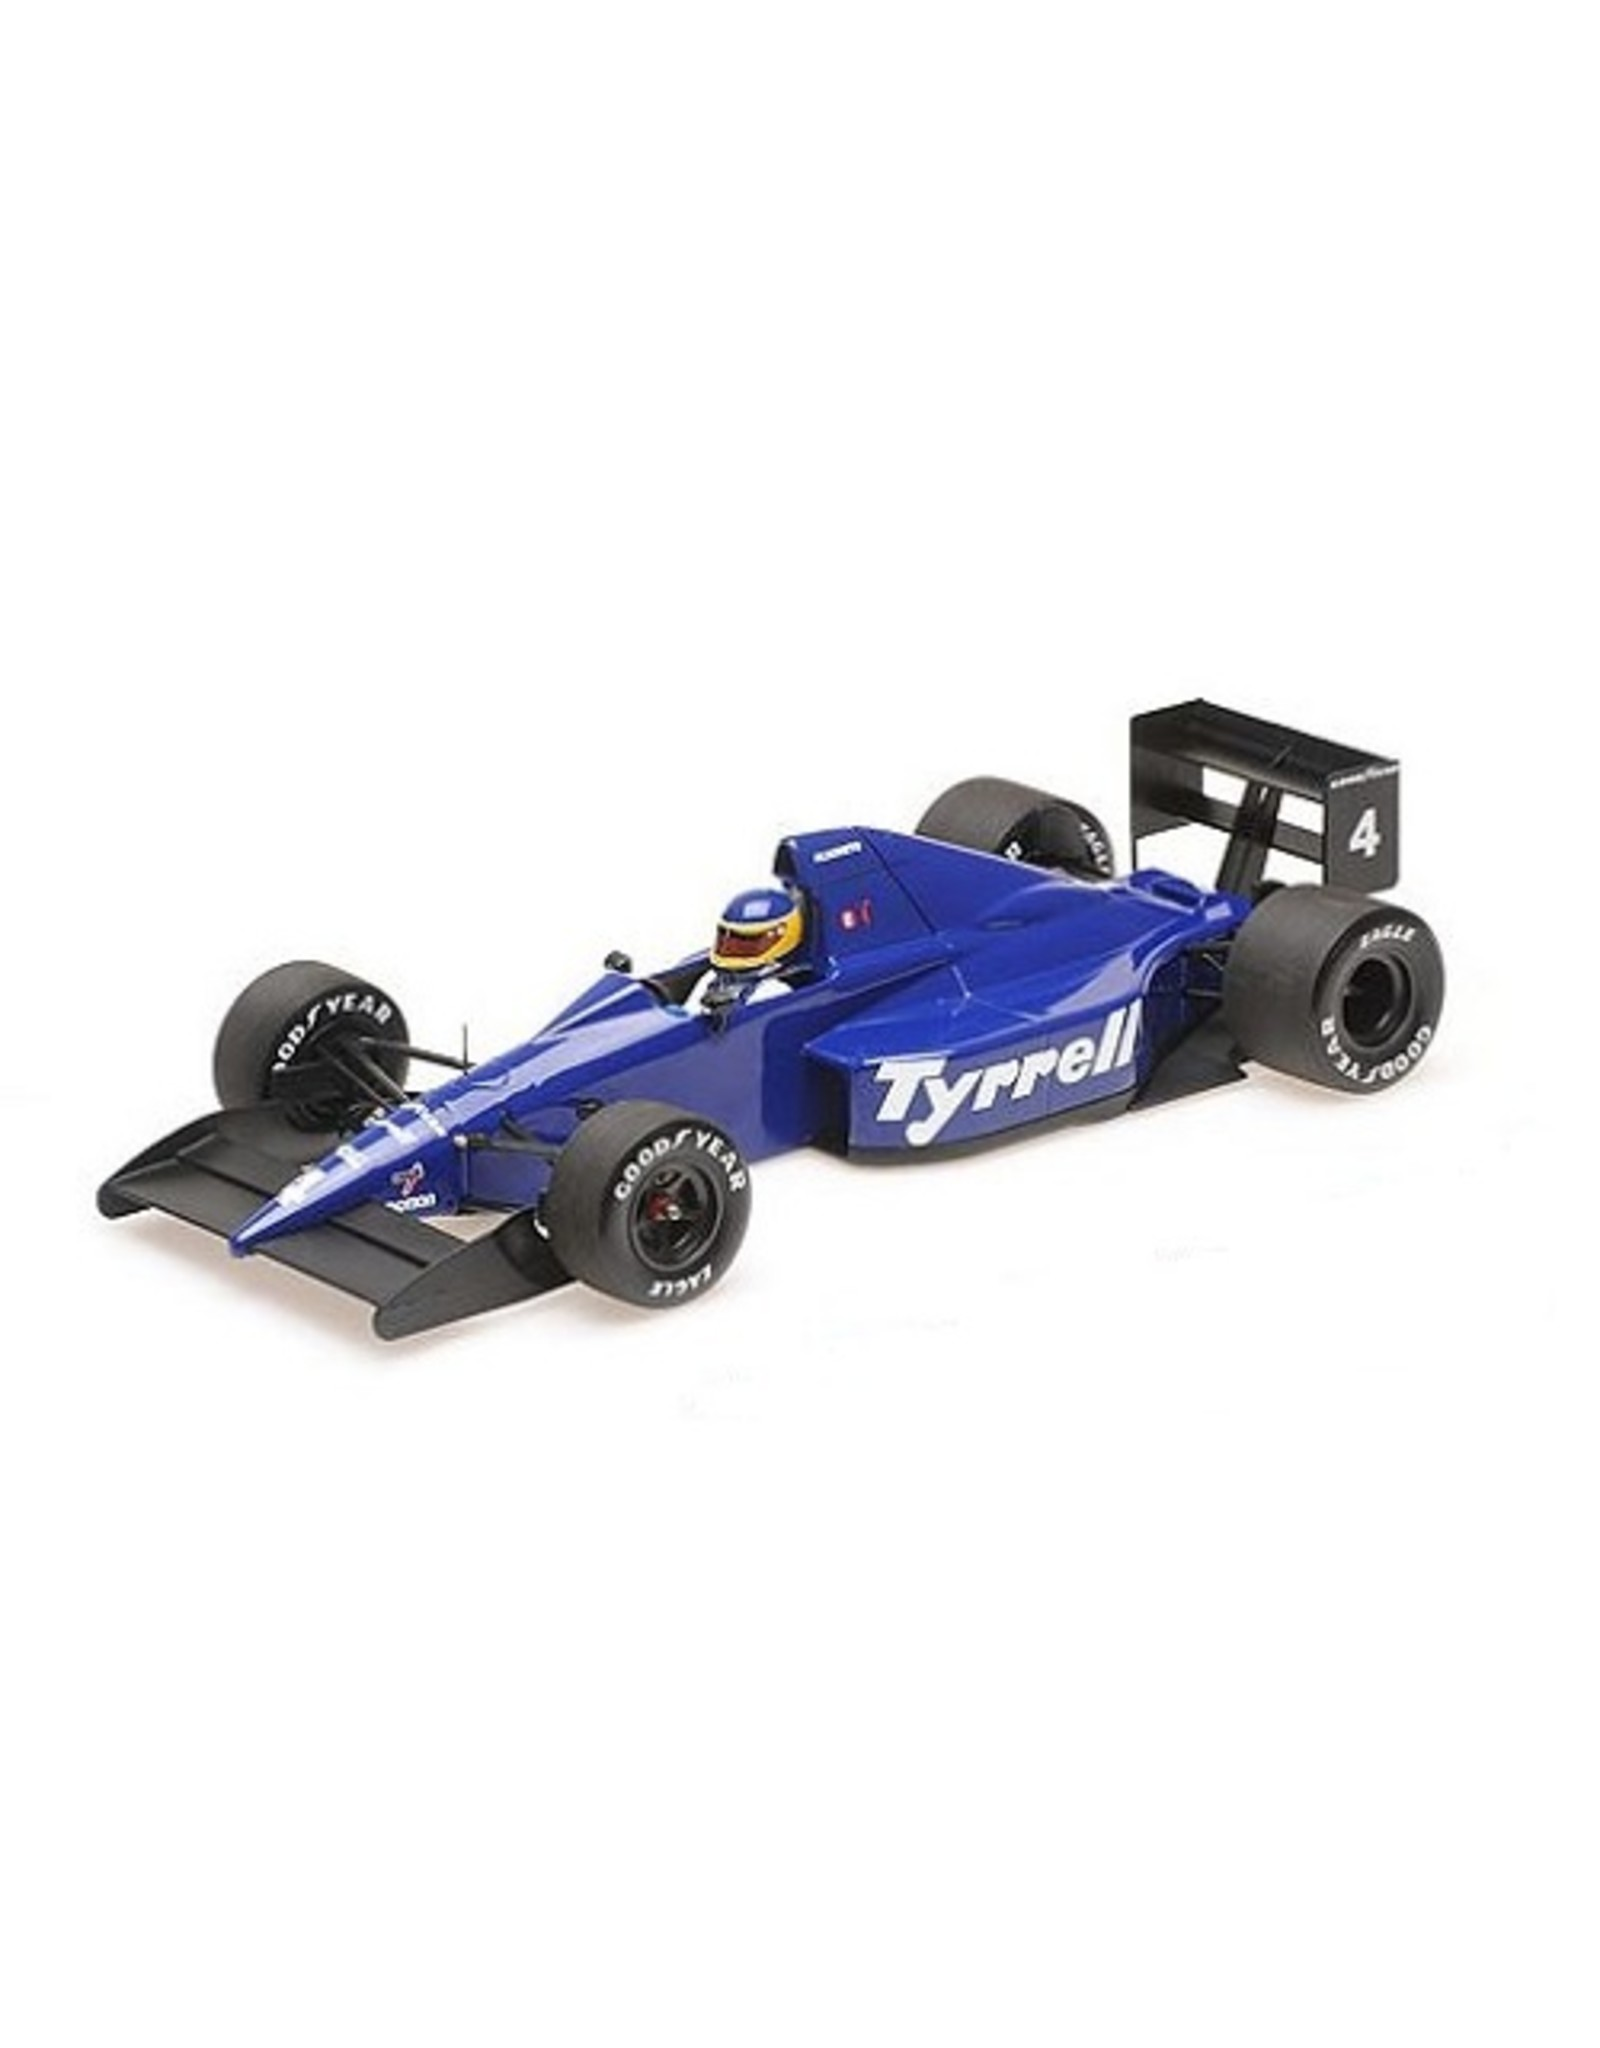 Formule 1 Tyrrell Ford 018 #4 3rd Place Mexican GP 1989 - 1:18 - Minichamps